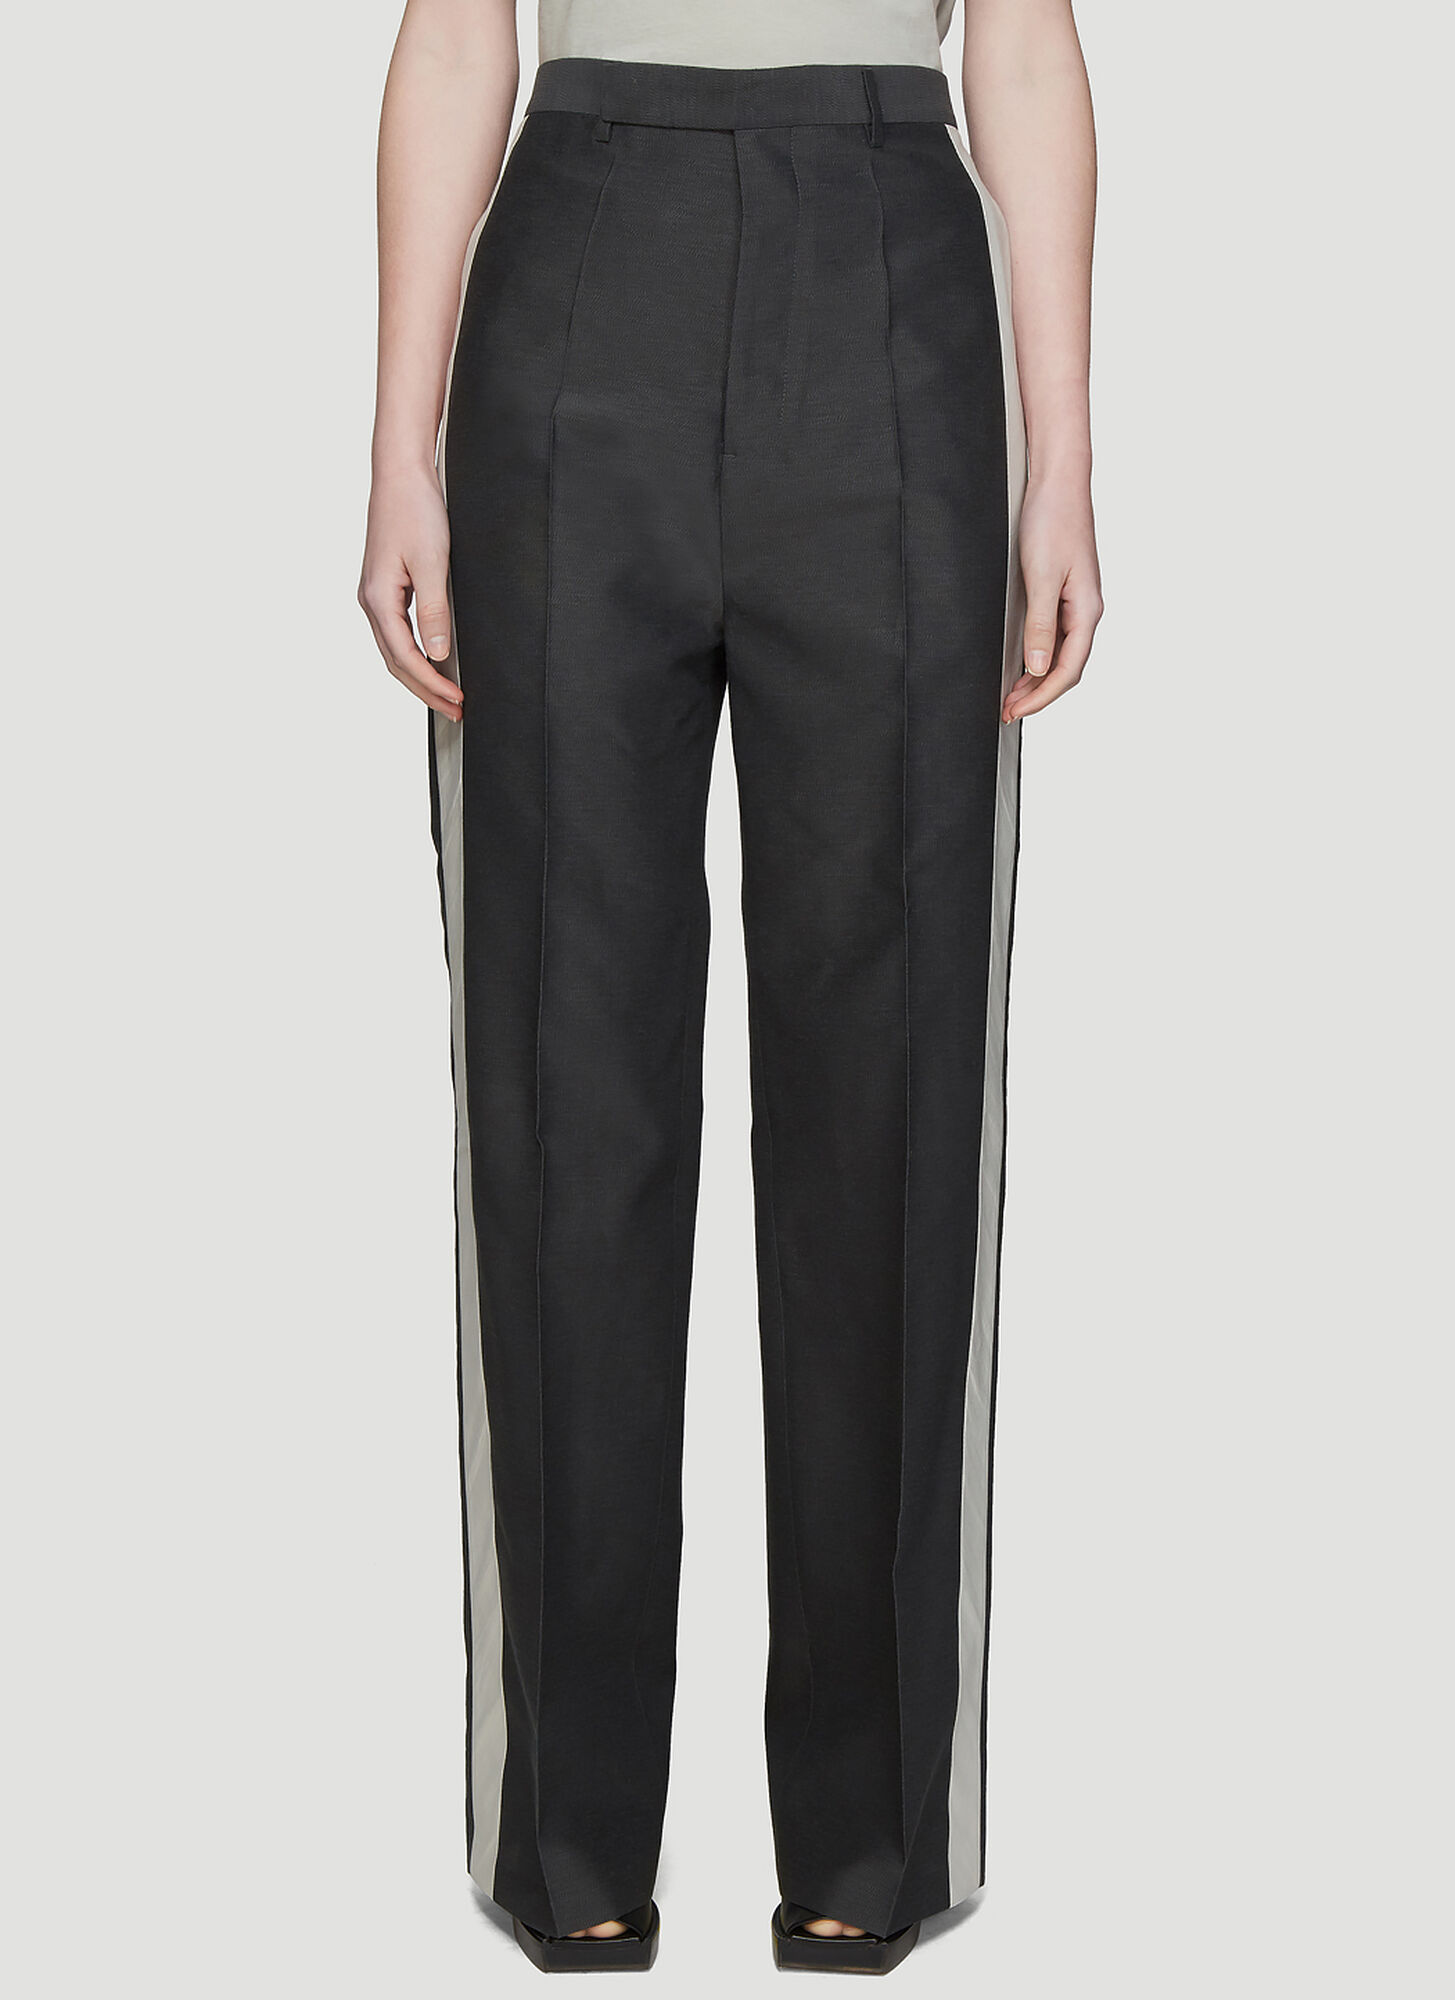 Rick Owens Babel Loose Tux Pants in Grey